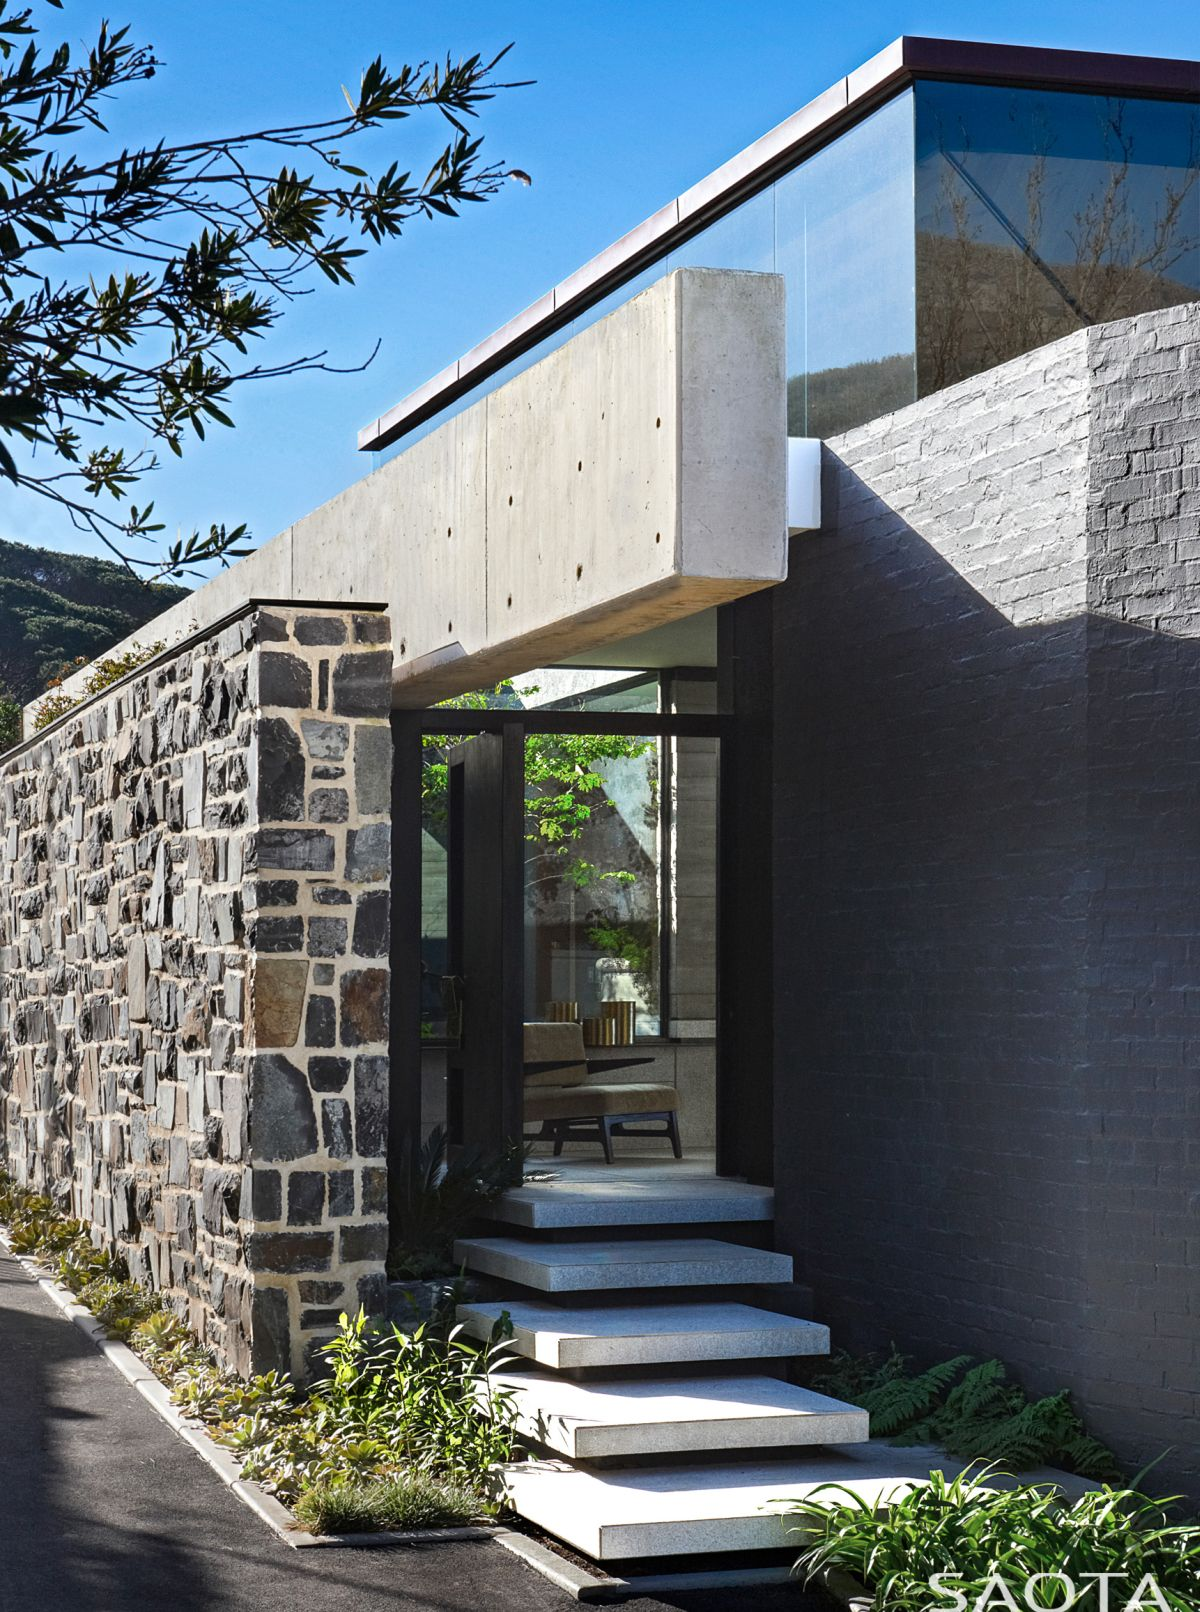 A stone wall conceals most of the house on the street side, offering privacy for the bottom floors